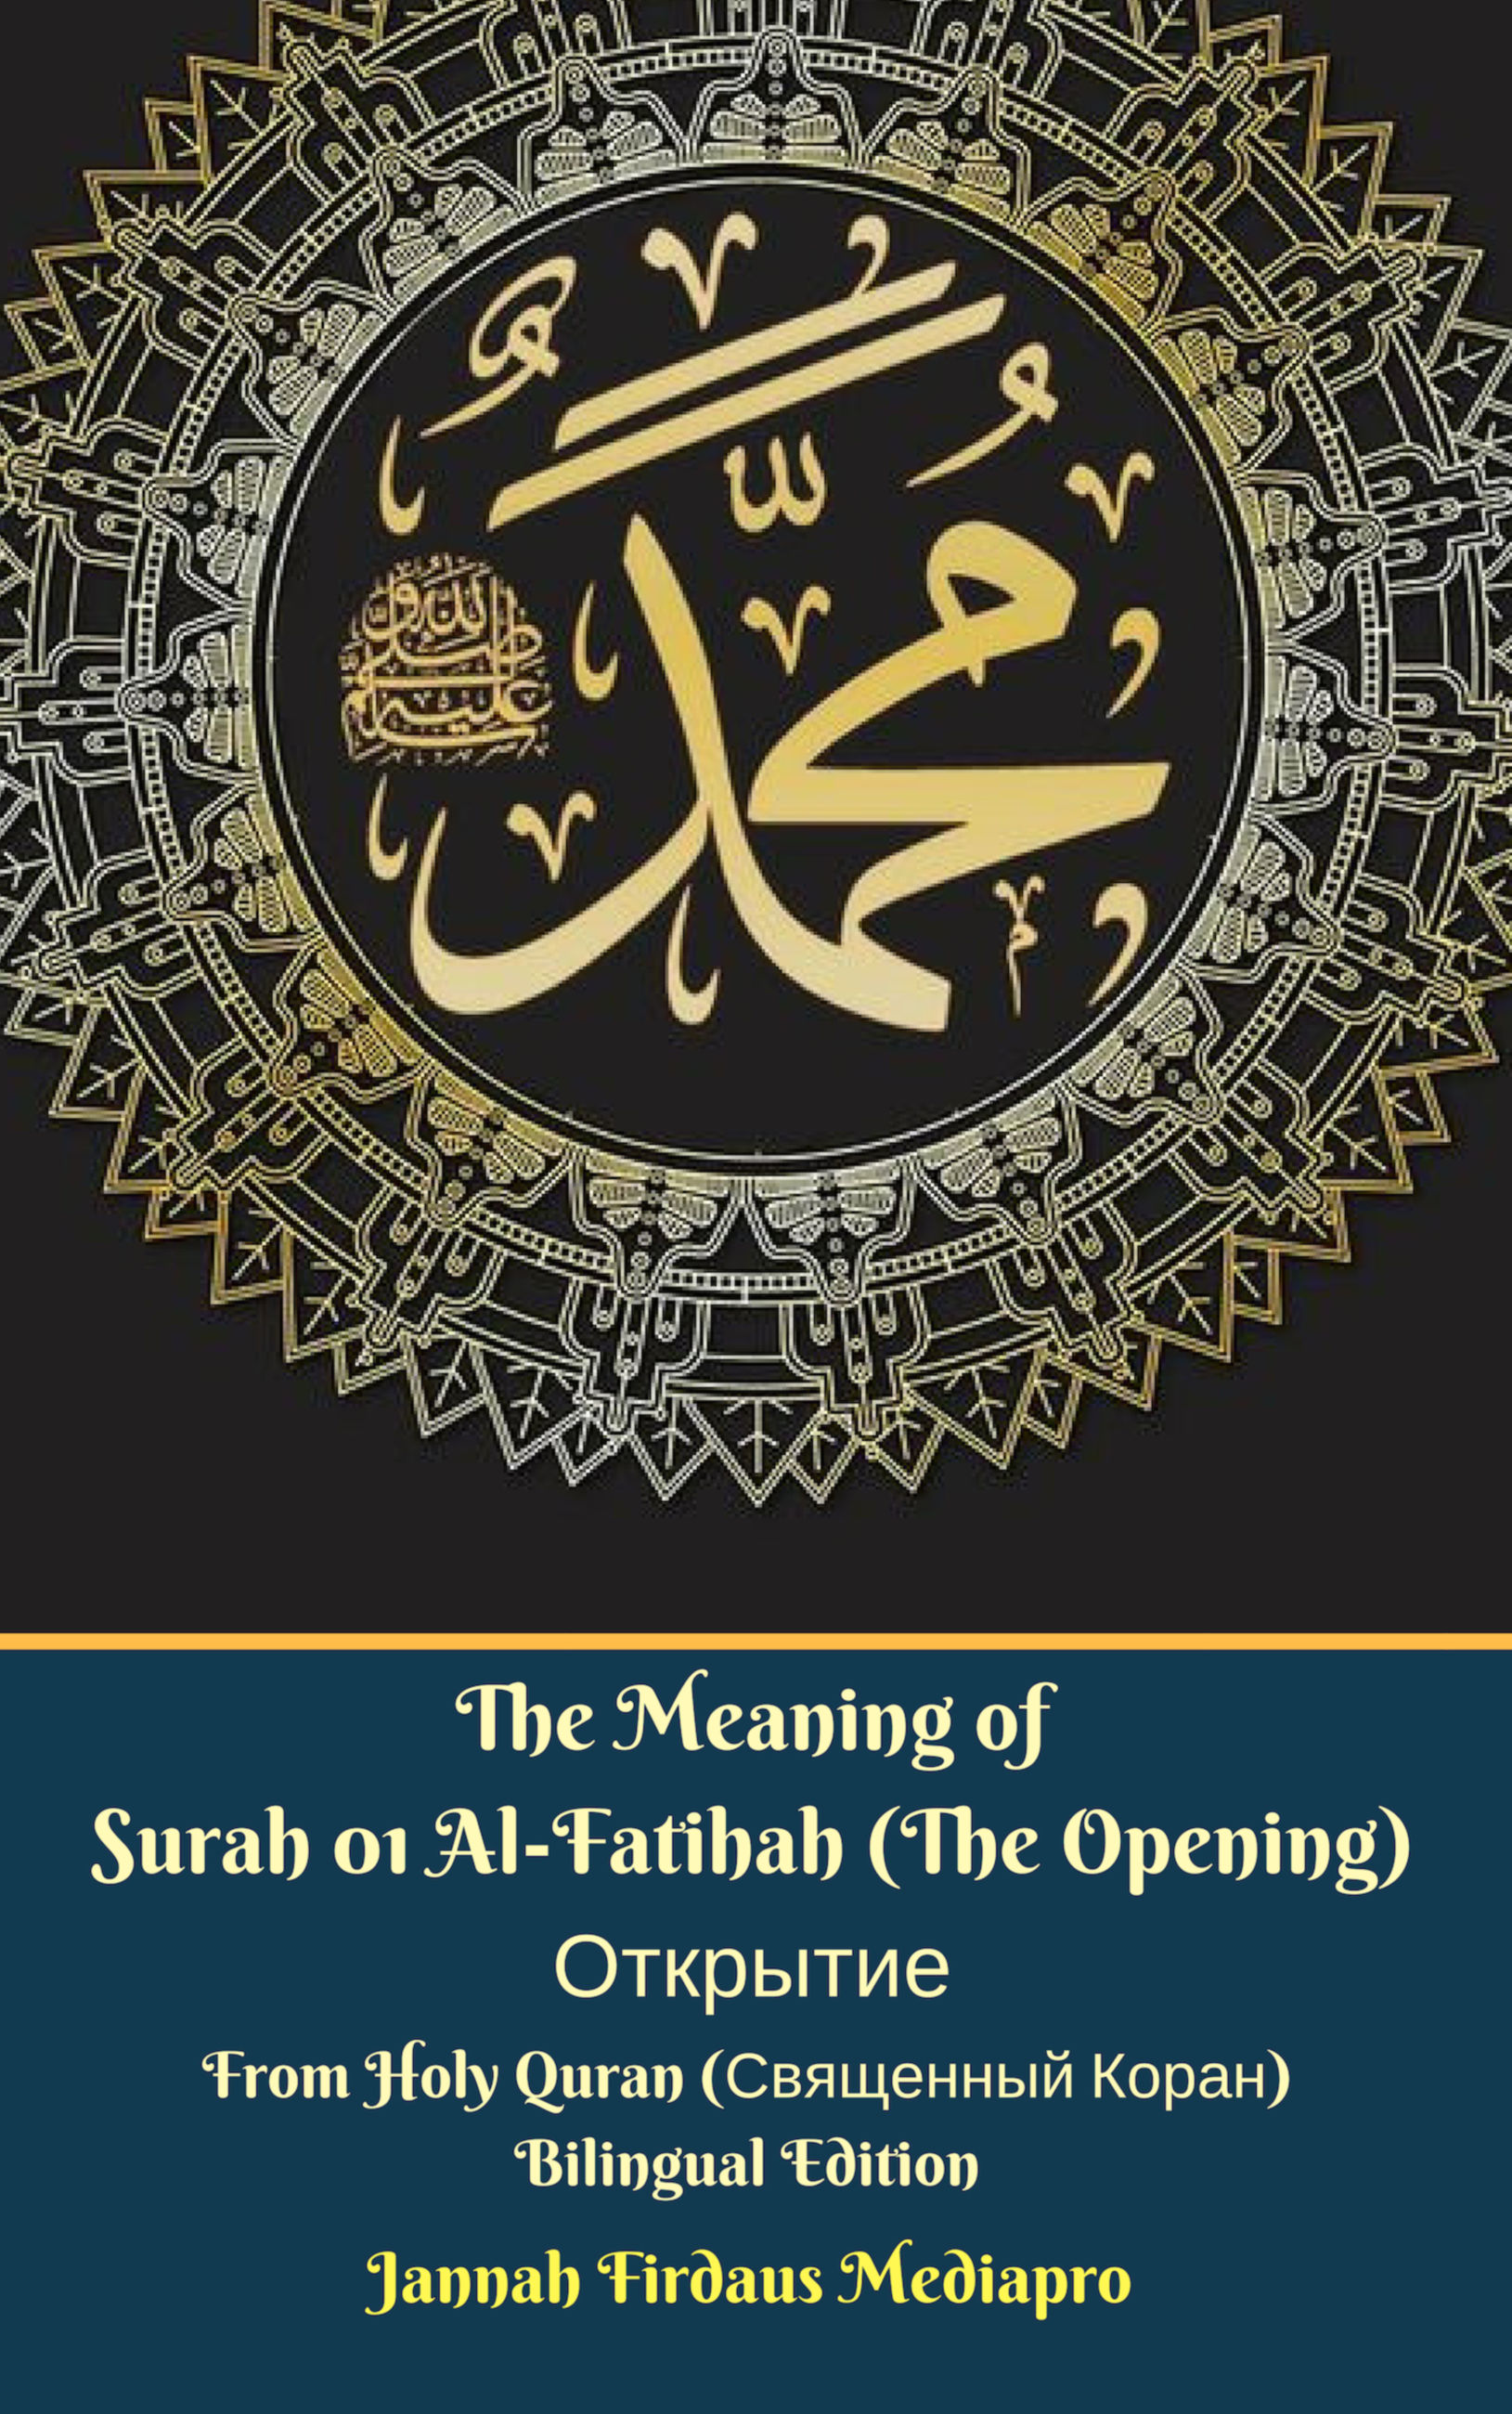 The Meaning of Surah 01 Al-Fatihah (The Opening) Открытие From Holy Quran  (Священный Коран) Bilingual Edition, an Ebook by Jannah Firdaus Mediapro